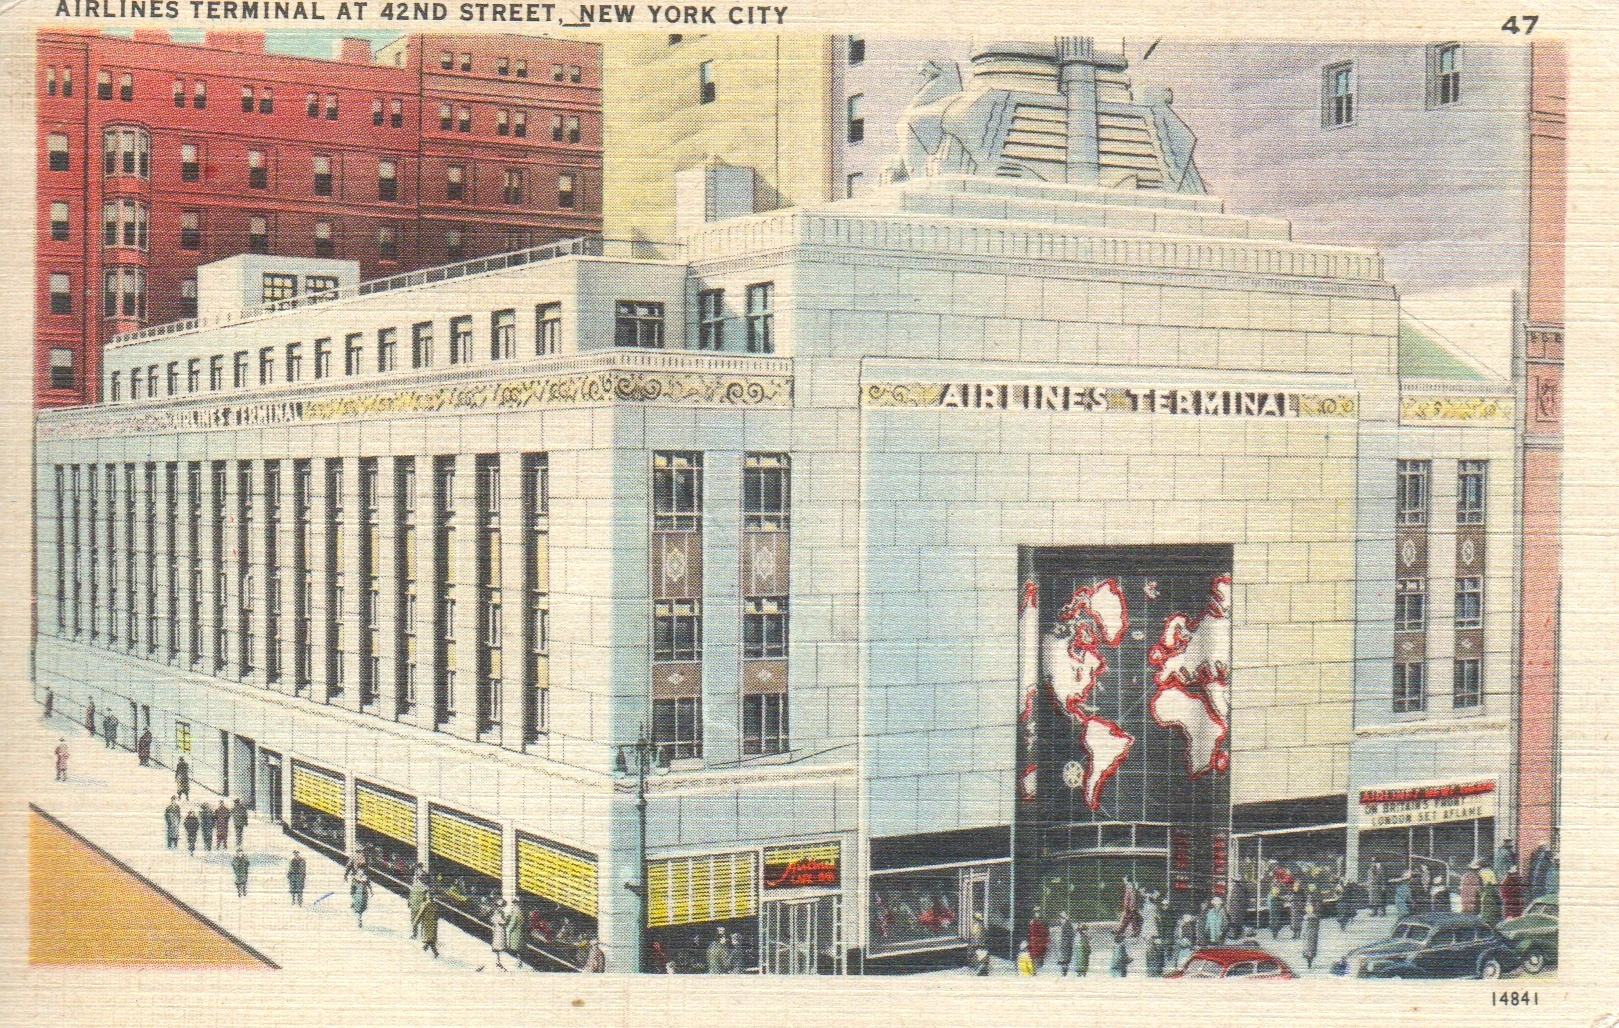 Vanished New York City Art Deco The Airlines Terminal